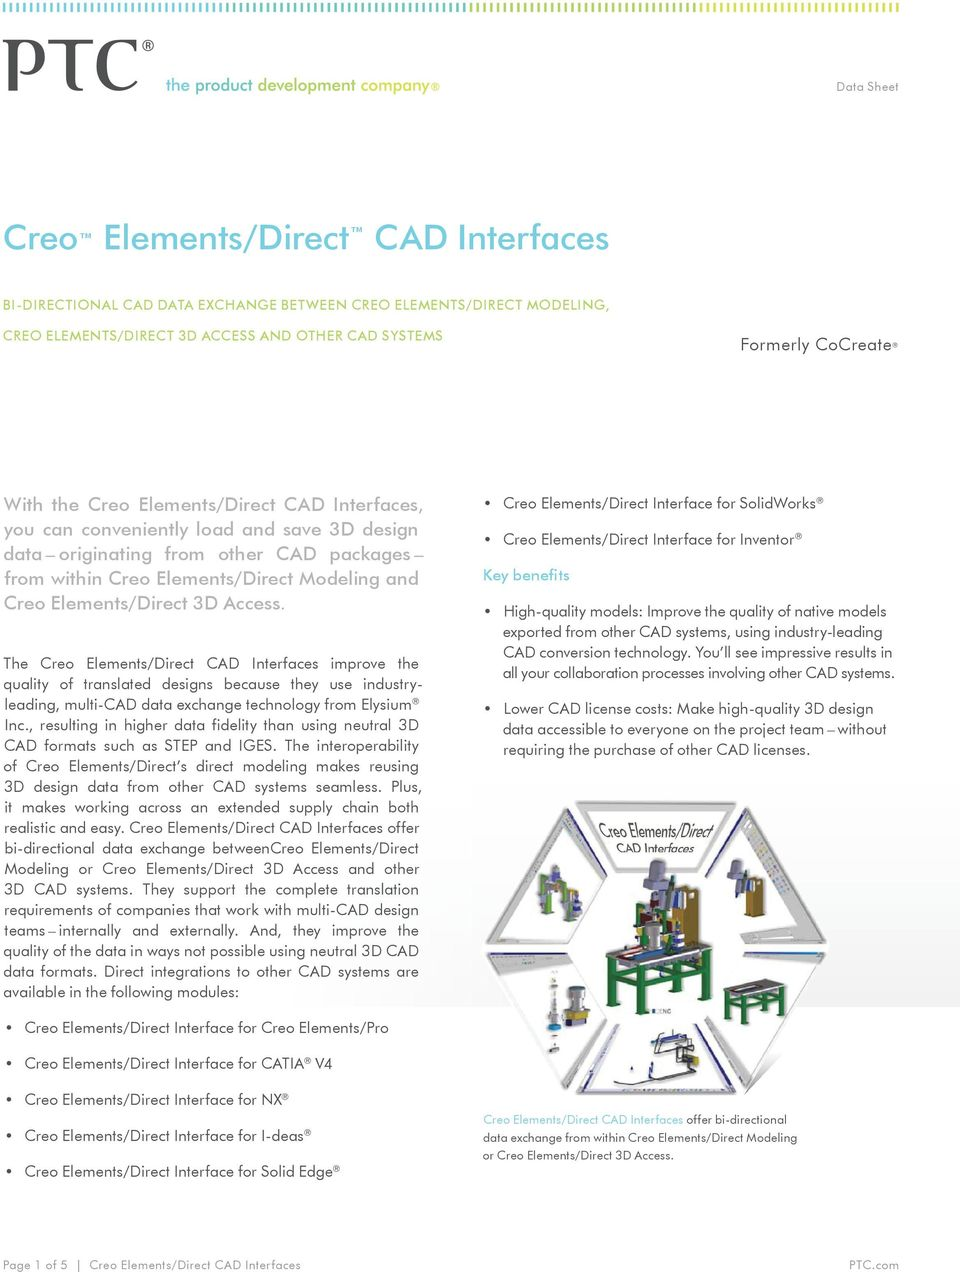 The Creo Elements/Direct CAD Interfaces improve the quality of translated designs because they use industryleading, multi-cad data exchange technology from Elysium Inc.